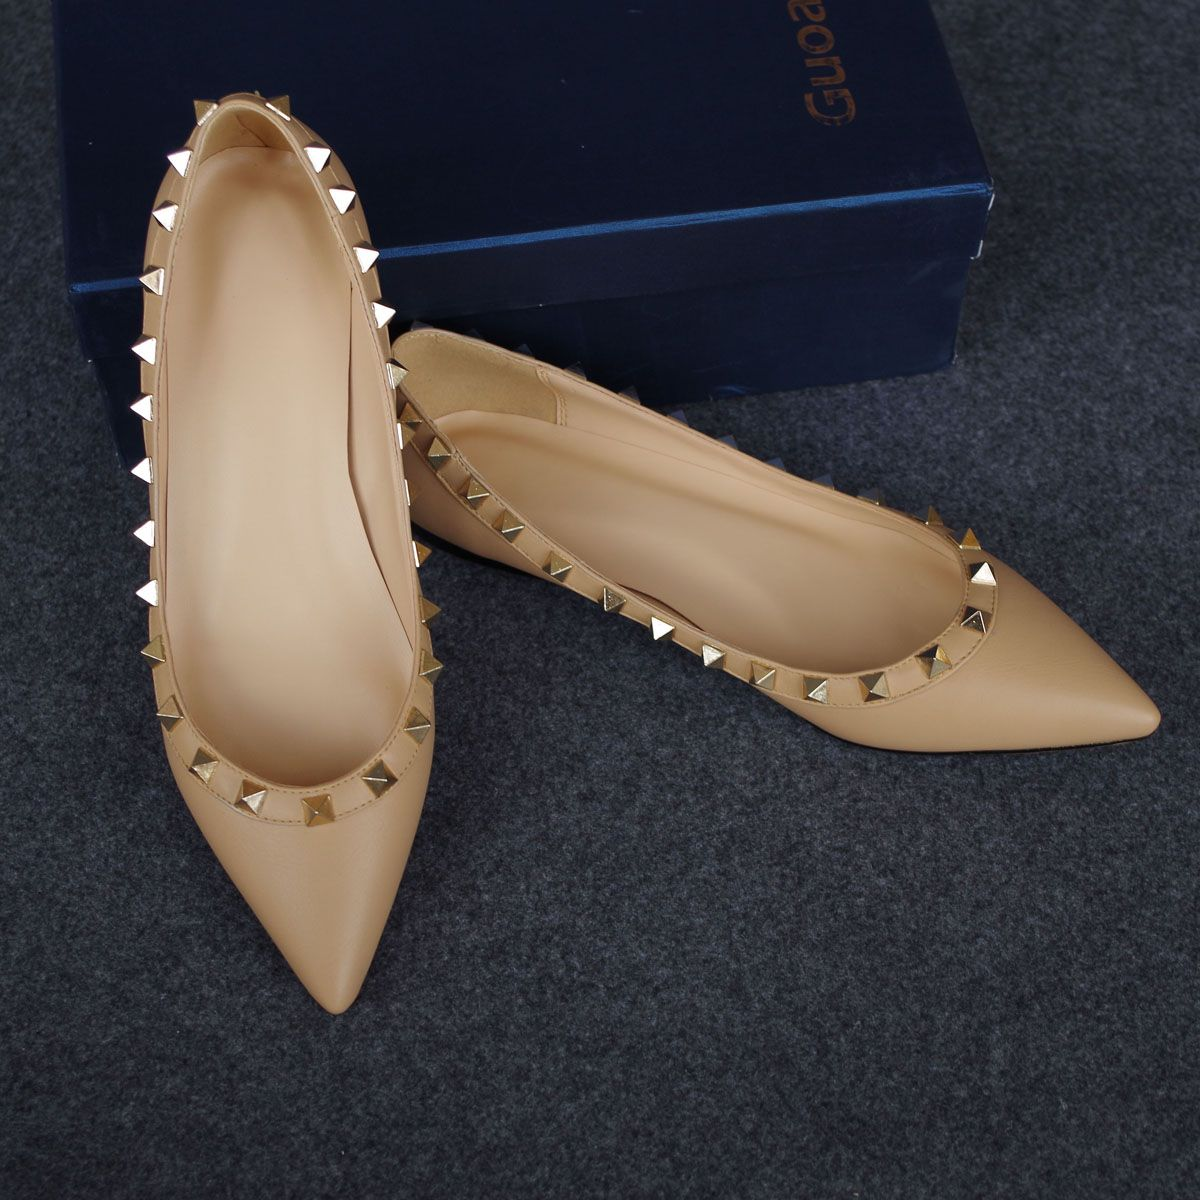 Women Pointed Toe Rivet Flats Shoes Studded Slip On  Ballet Loafers #SARA-2